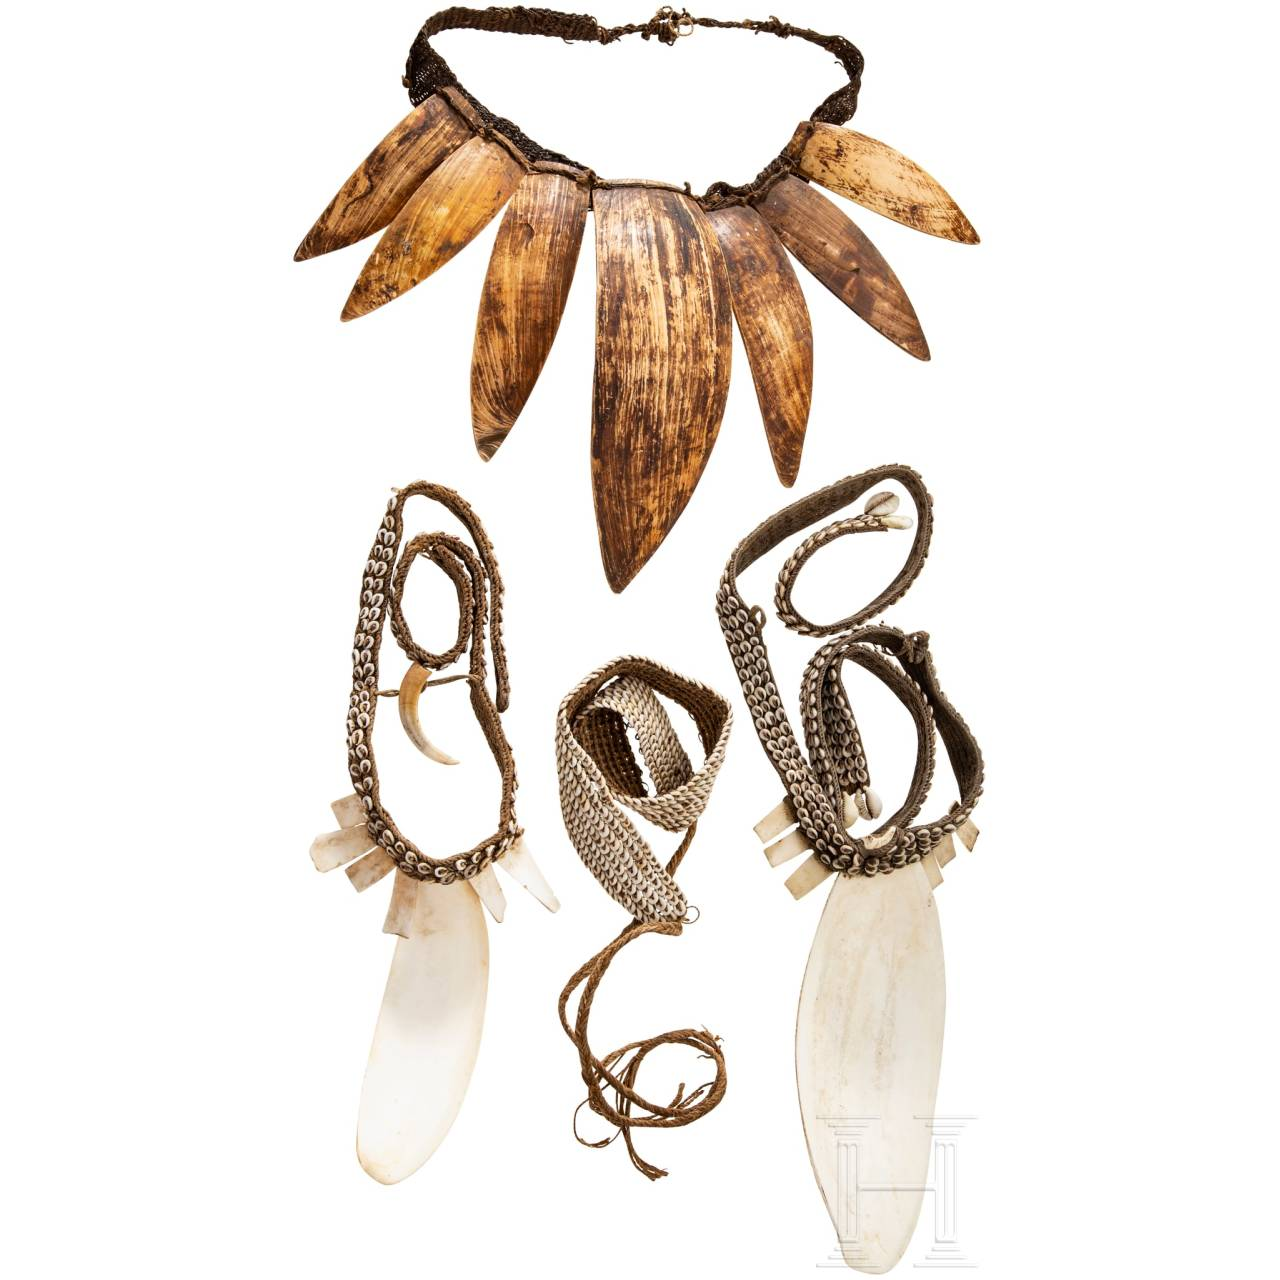 Four pieces of jewellery, Papua New Guinea